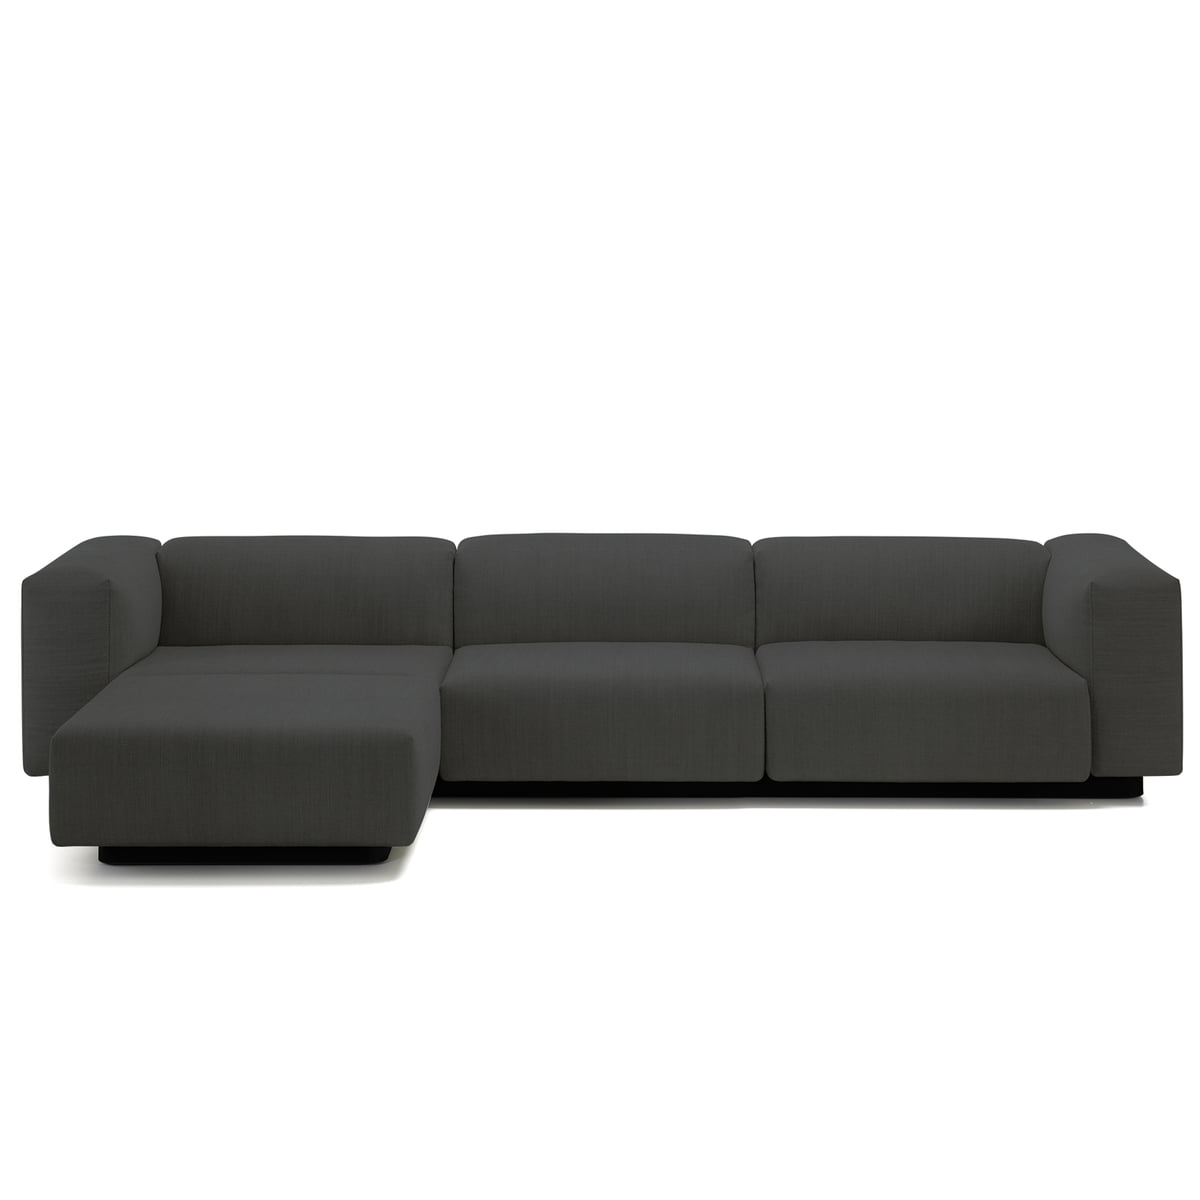 Soft Modular Ecksofa von Vitra online kaufen on chaise recliner chair, chaise sofa sleeper, chaise furniture,